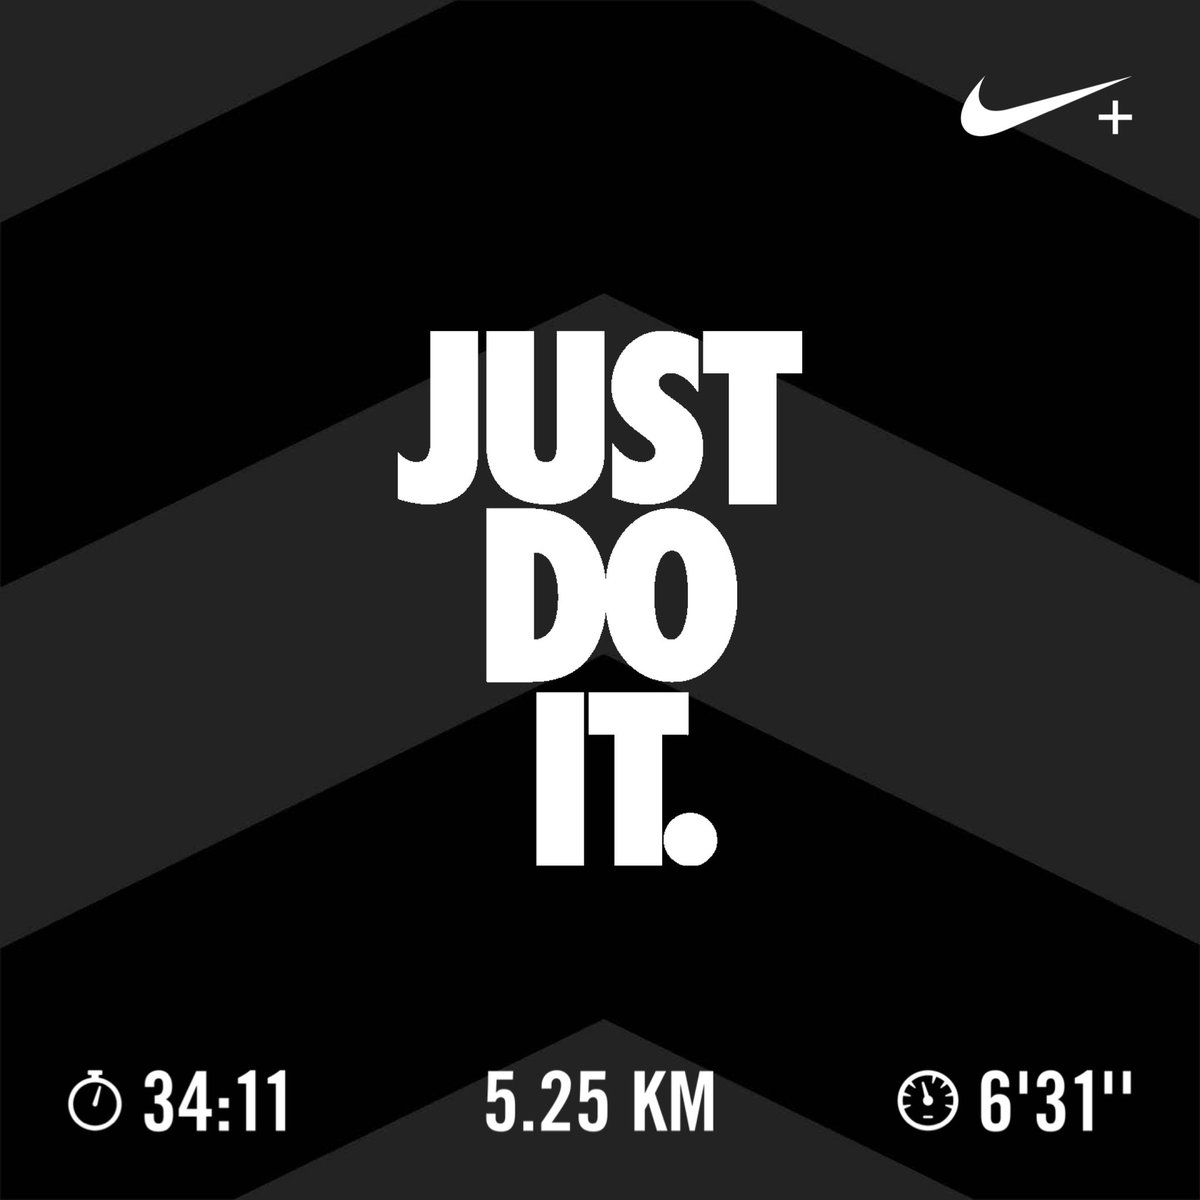 Almost didn't run. Was thinking of doing a 10km walk but after 3km, decided to switch it to a run. #JUSTDOIT #exercise #running #walking #jogging #fitness #health #healthiswealth #healthylifestyle #heart #cardio #fitnesslifestyle #applewatch #iphoneX #adidas #skechers #Jesuspic.twitter.com/R4IEnqzB94